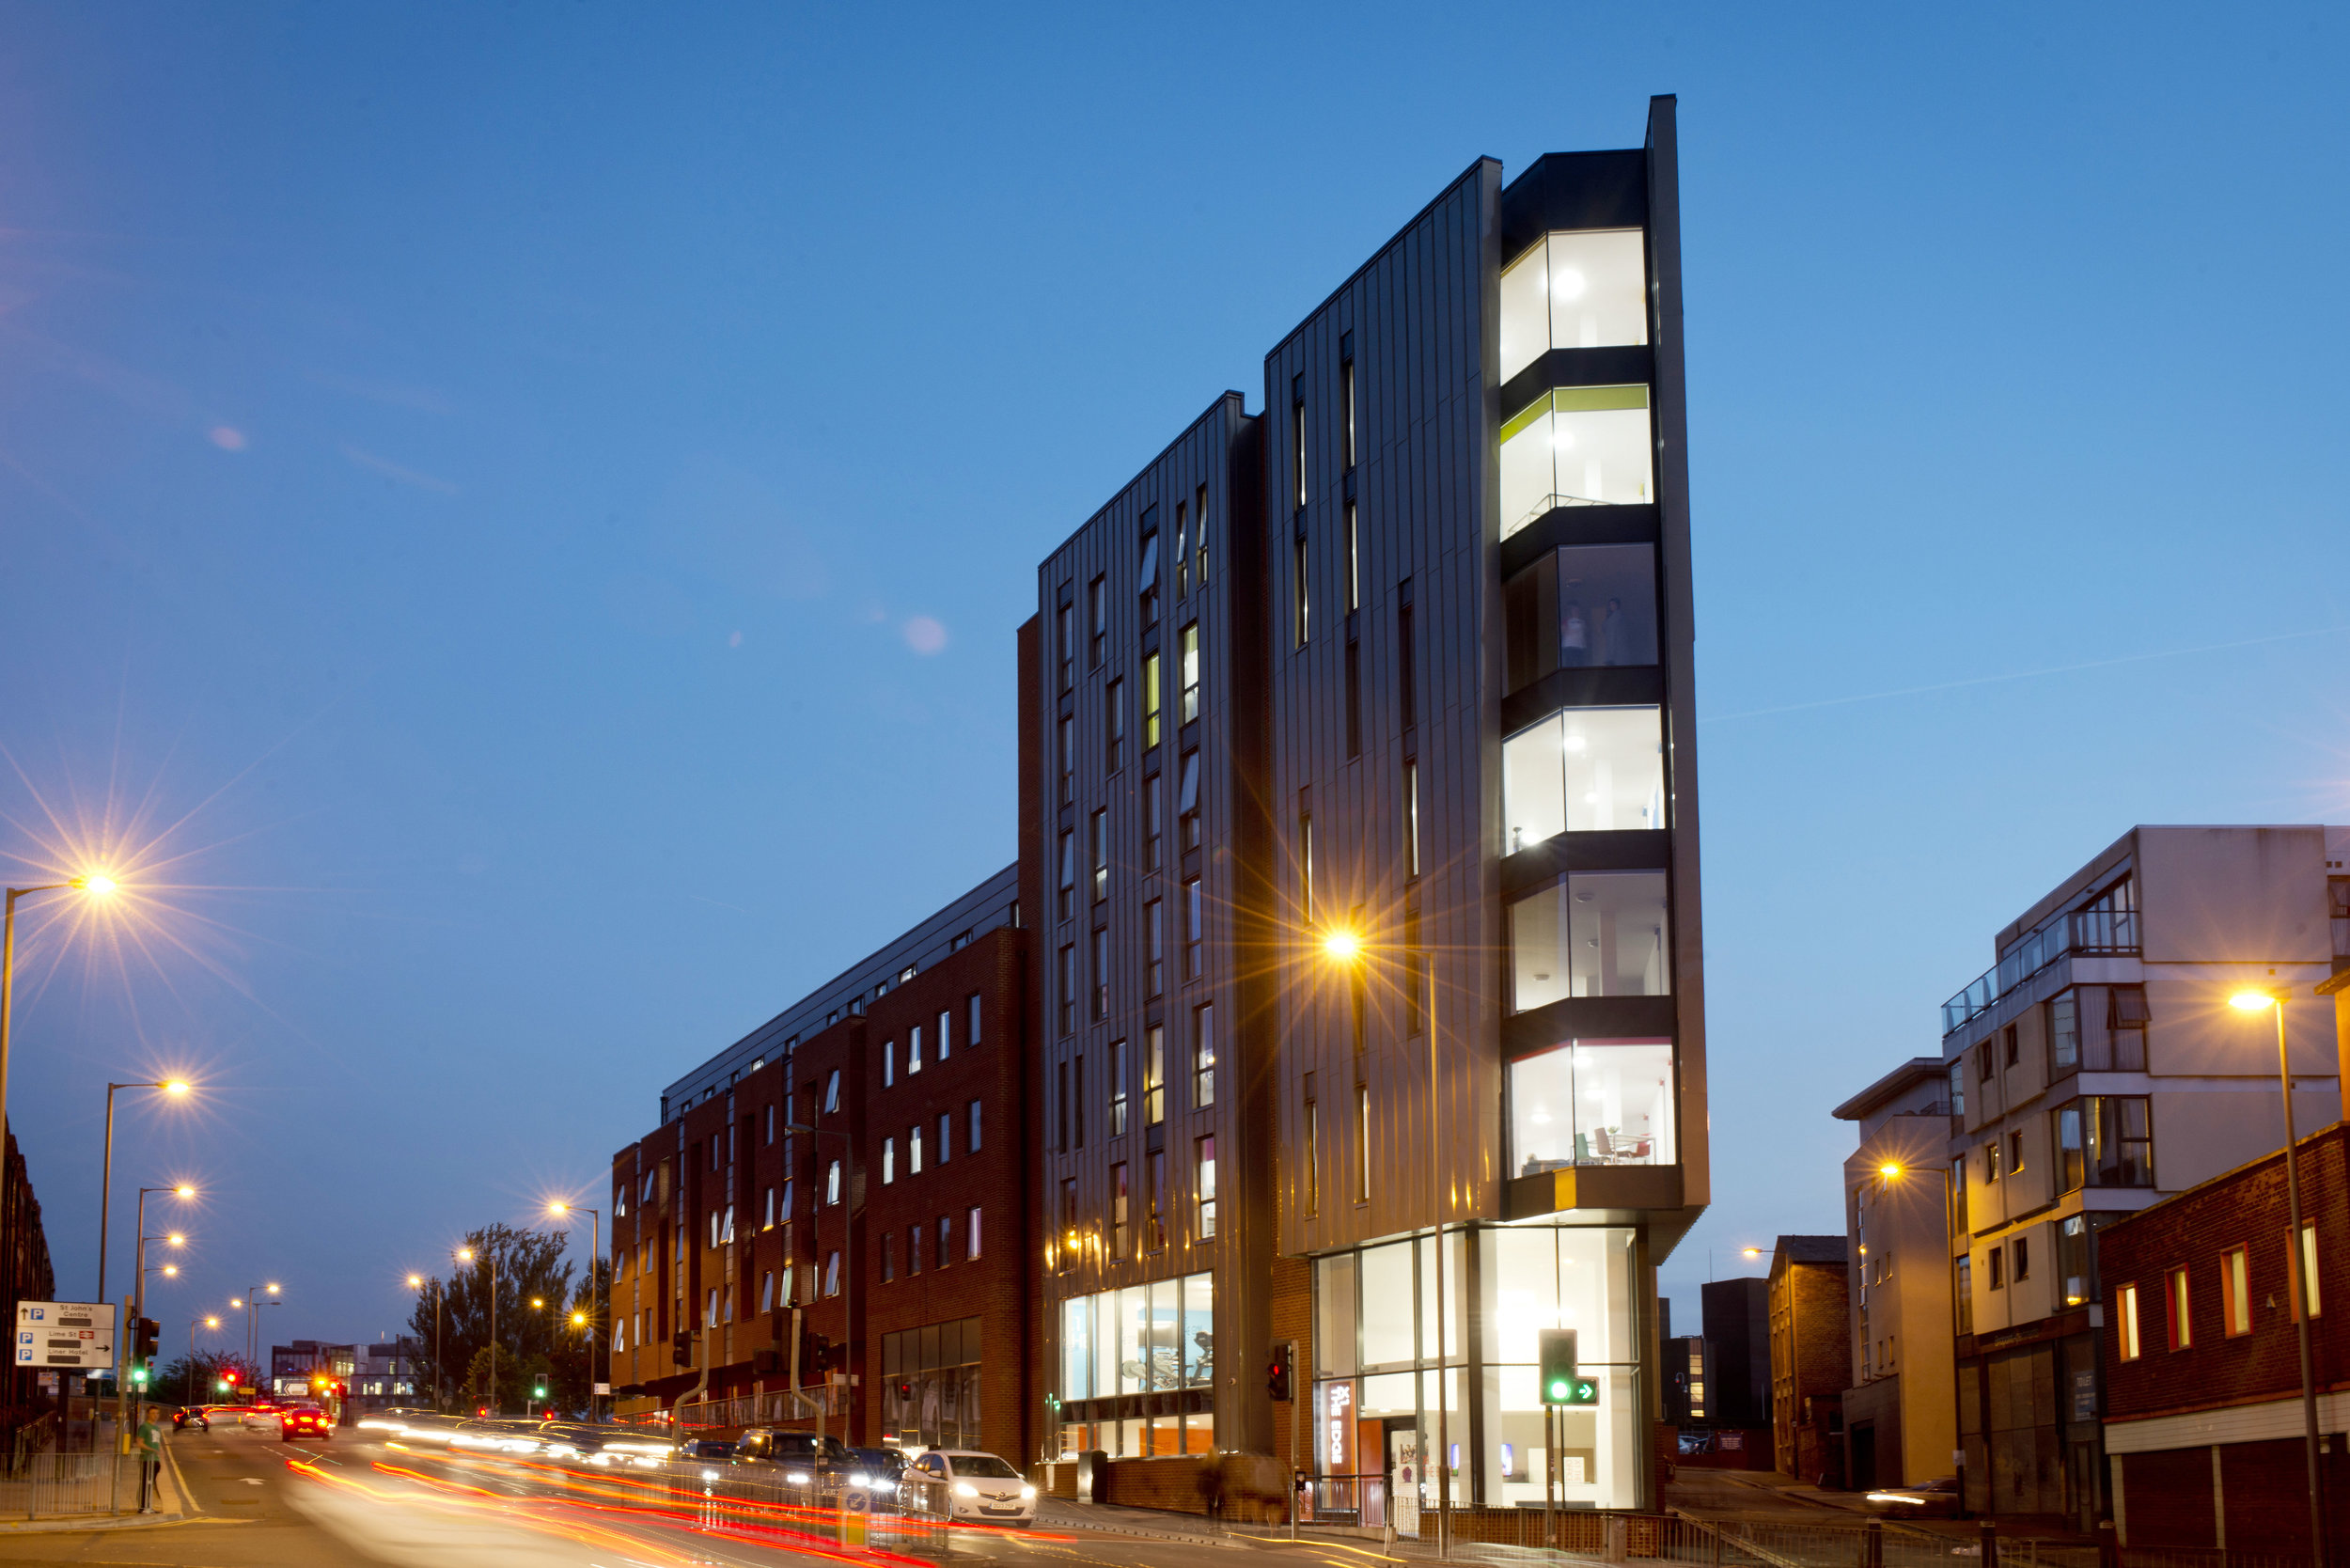 Student Accommodation: The Edge, Liverpool